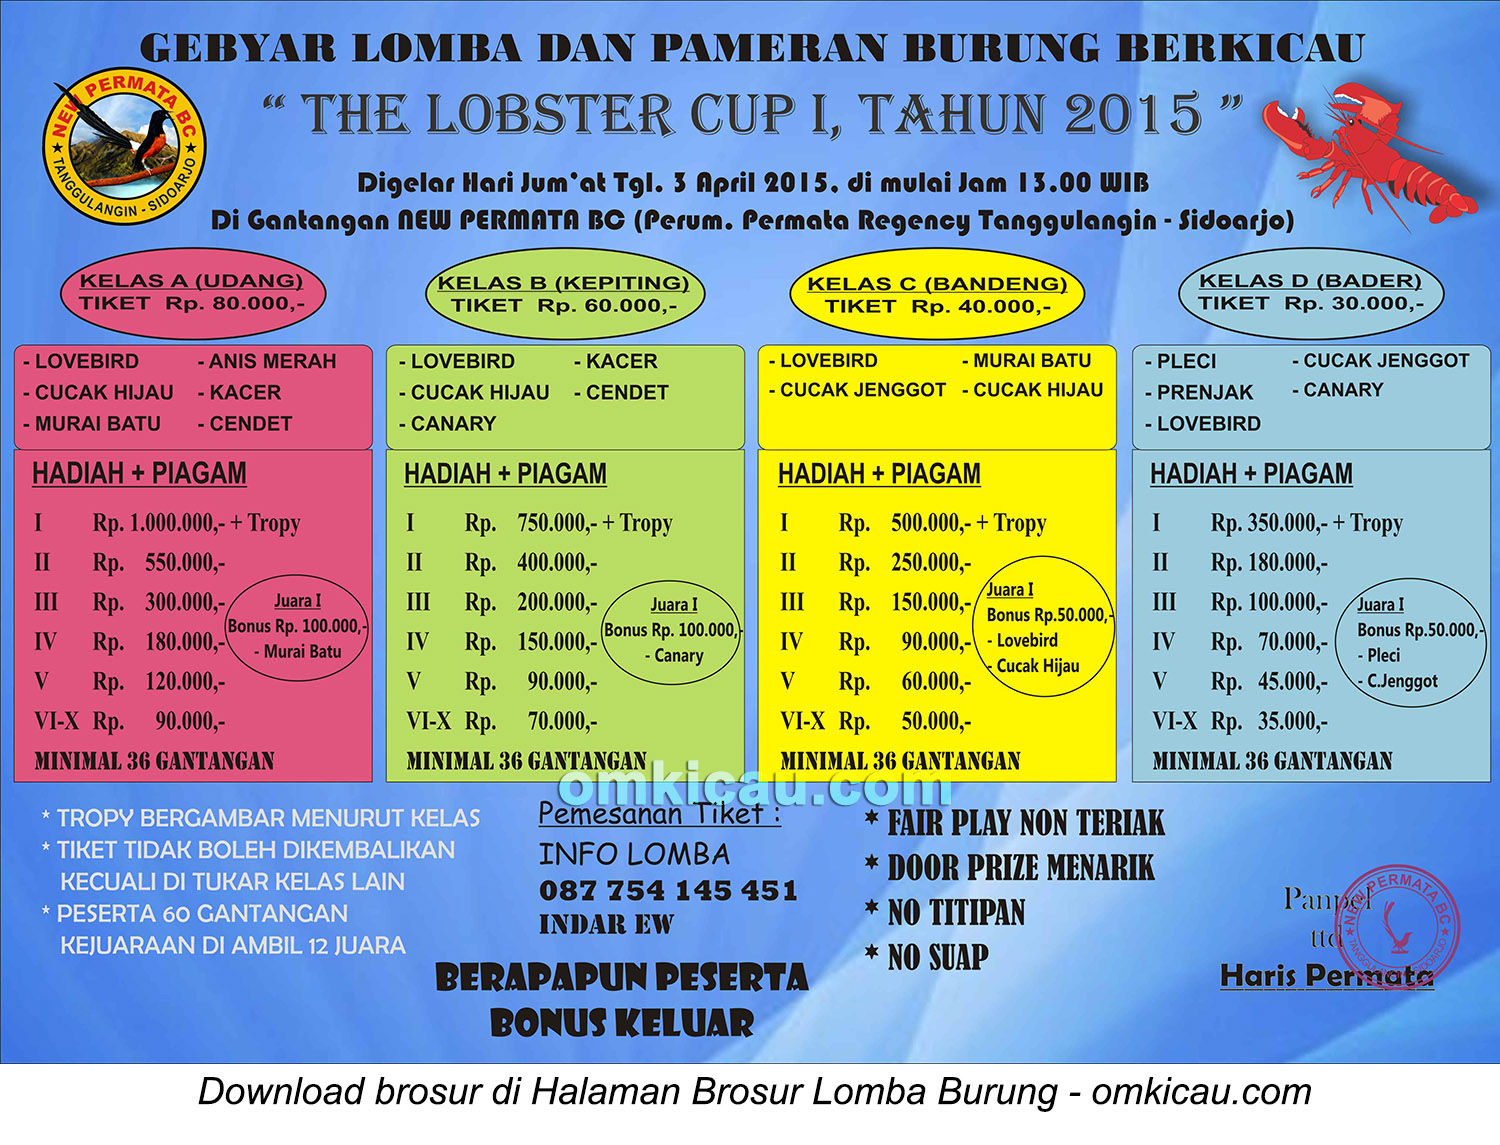 Brosur Lomba Burung Berkicau The Lobster Cup I, Sidoarjo, 5 April 2015